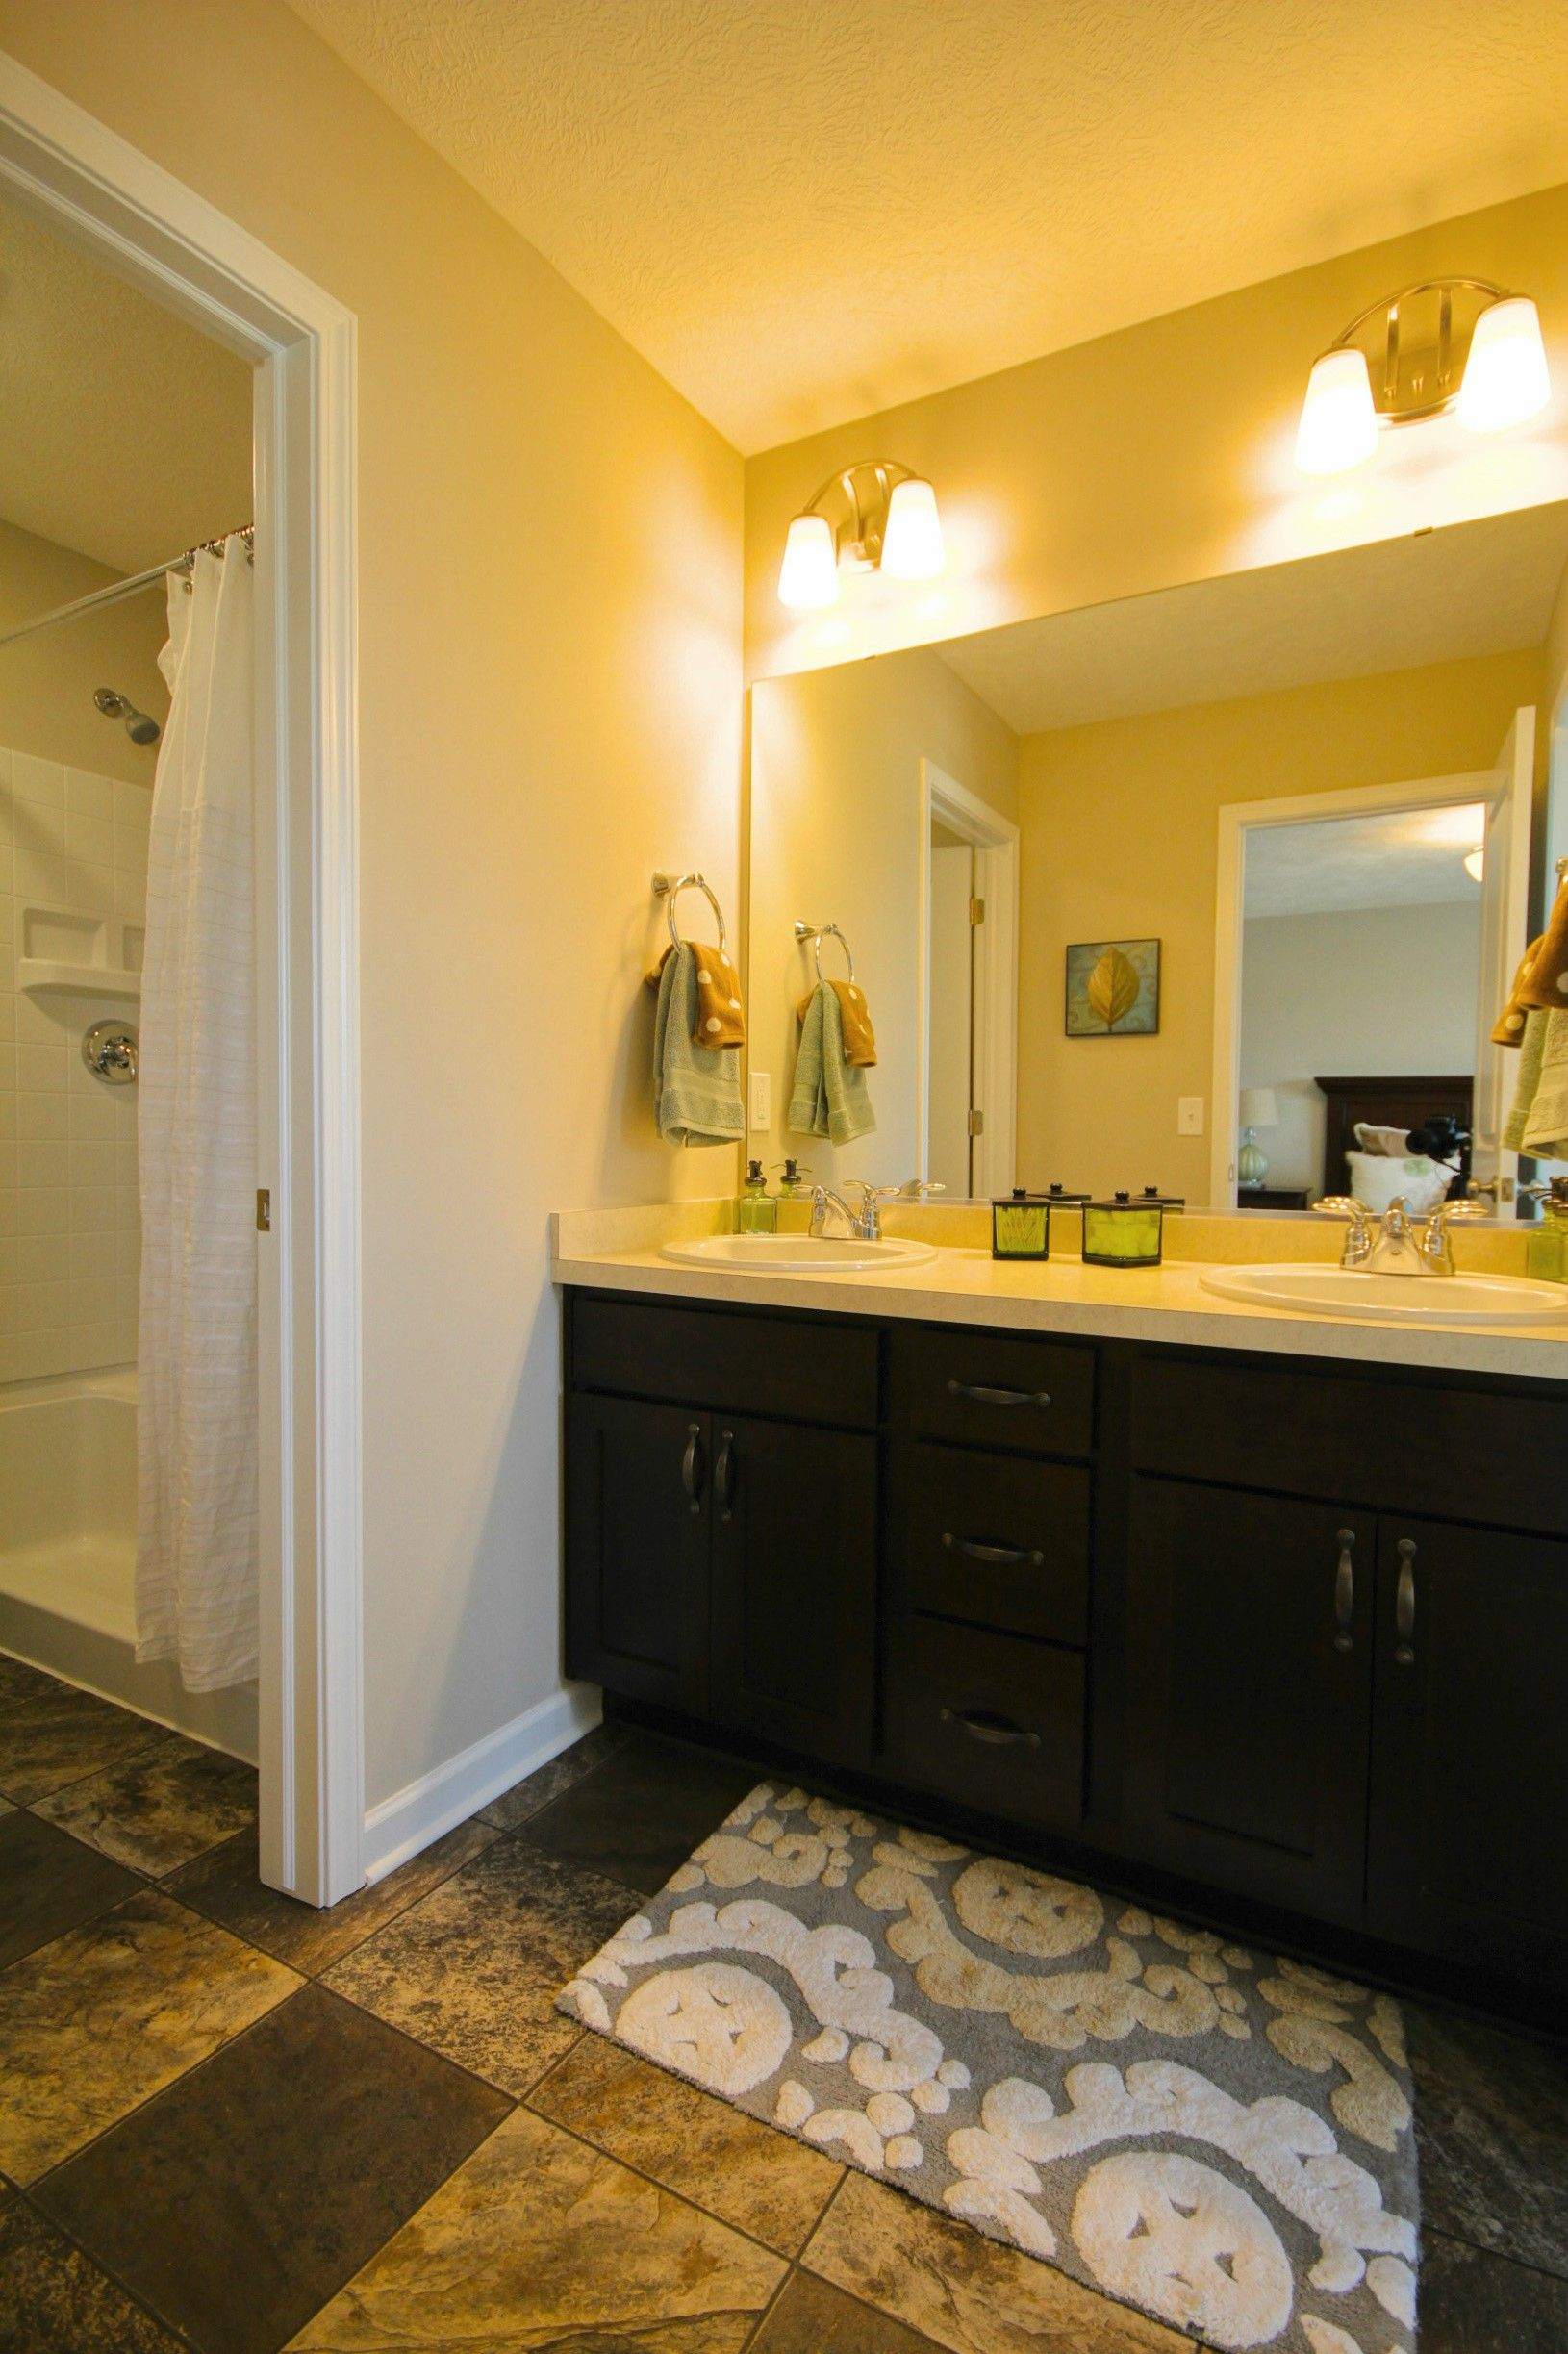 Bathroom featured in the Northwood By Mayberry Homes in Flint, MI